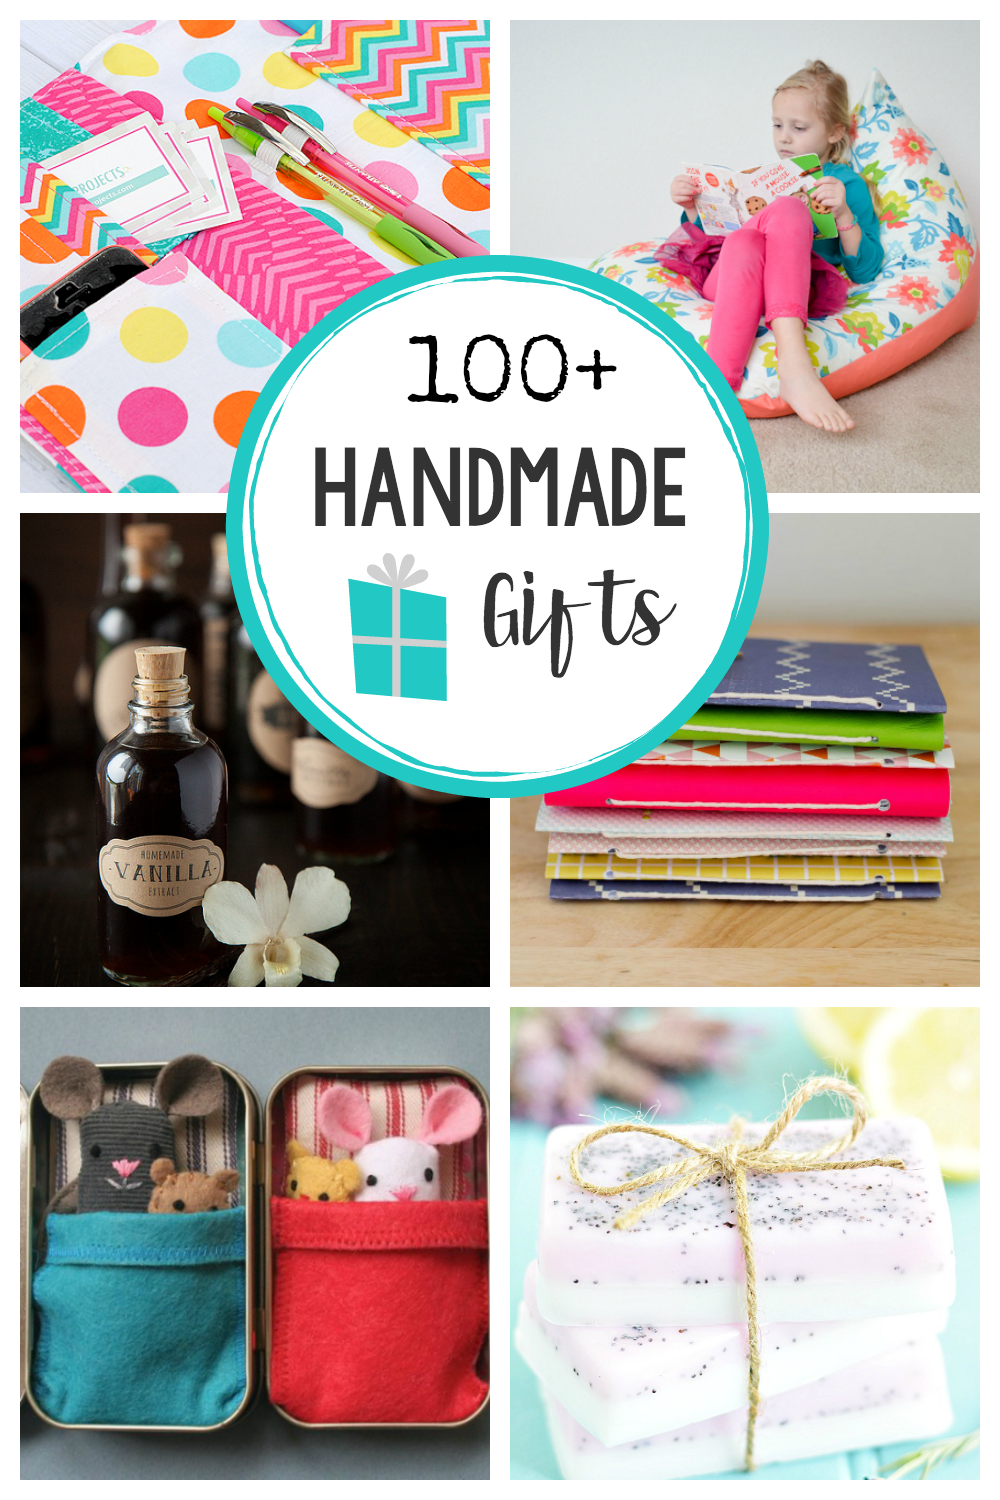 100+ Handmade Gifts to Make this Christmas or for Birthdays or Any Occasion! Handmade gift ideas for women, kids, neighbors, men and teens! #handmadegifts #giftideas #gifts #christmas